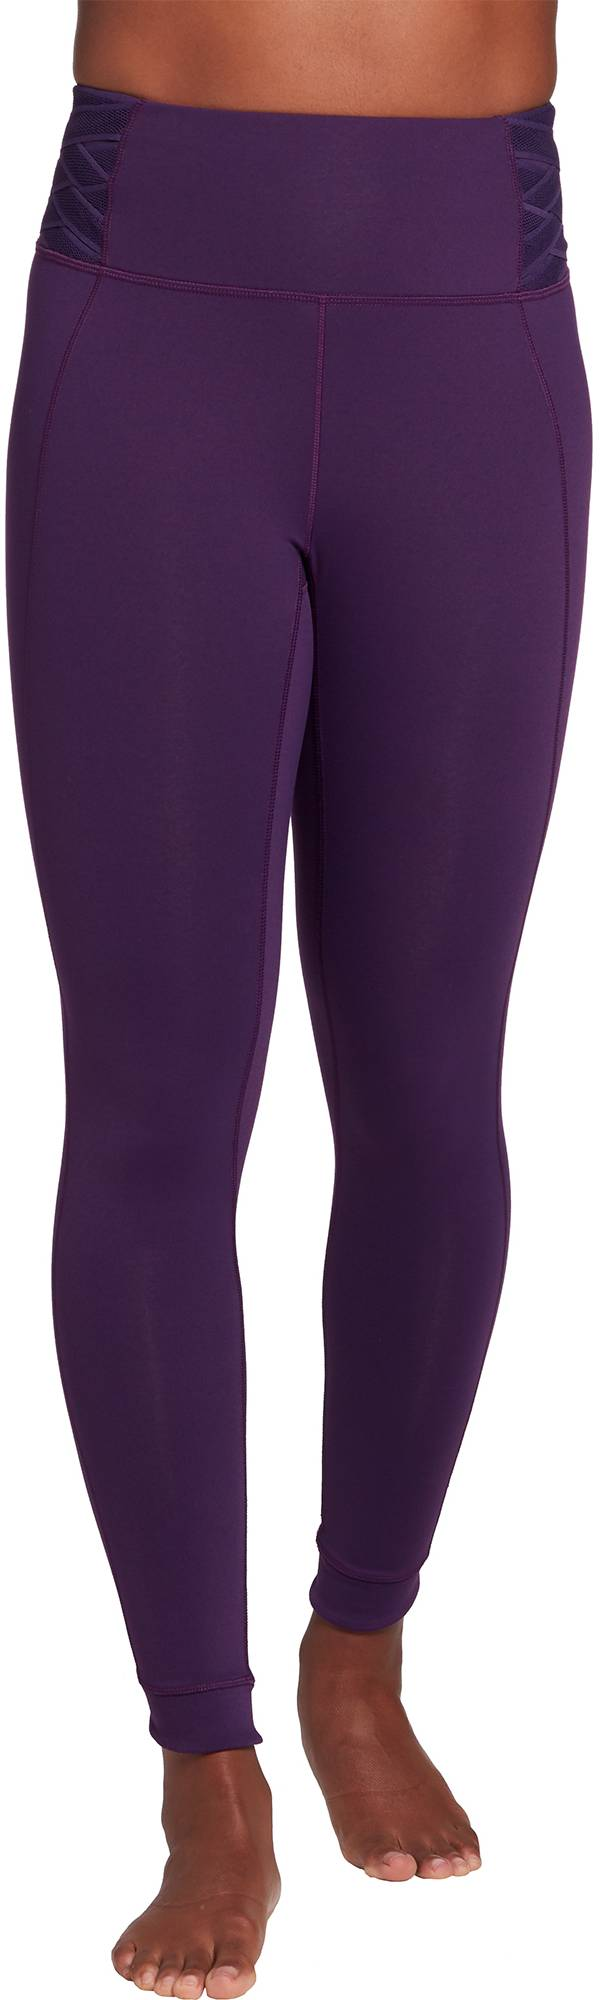 CALIA by Carrie Underwood Women's Essential Lattice Tights product image